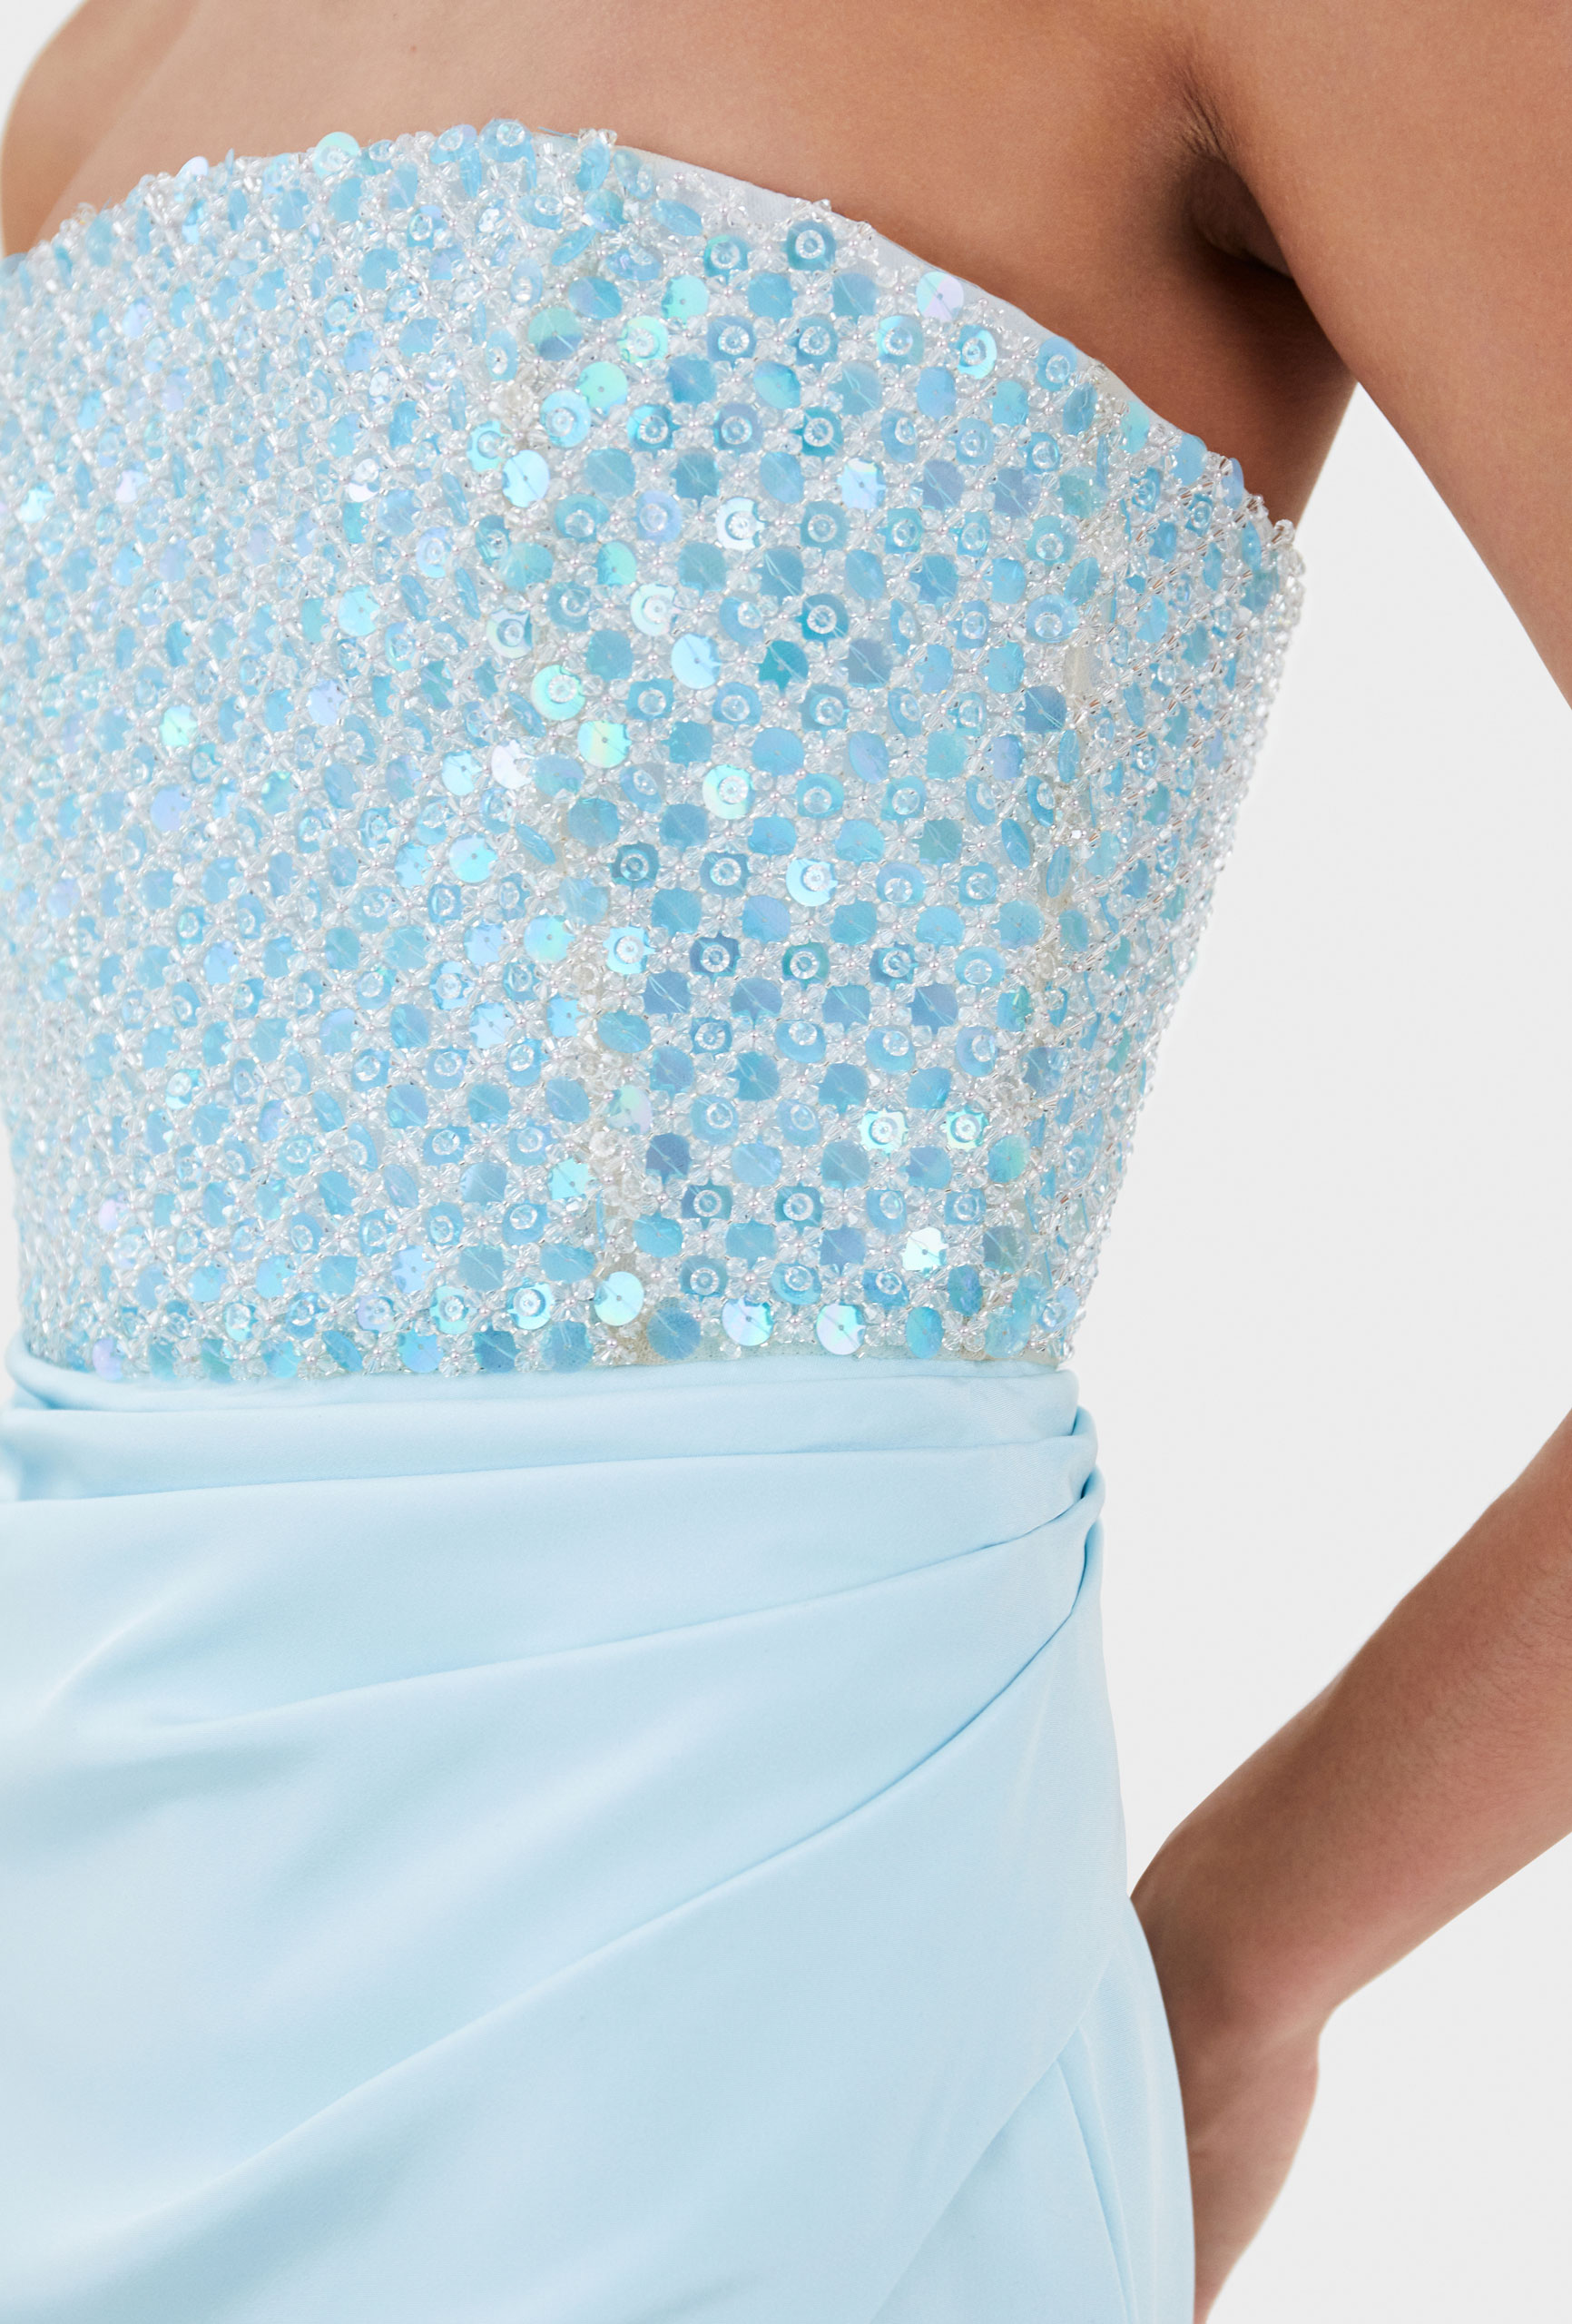 Thom Laurence Dress, Crystal and Pearl embellishment, French Tulle, Made in London